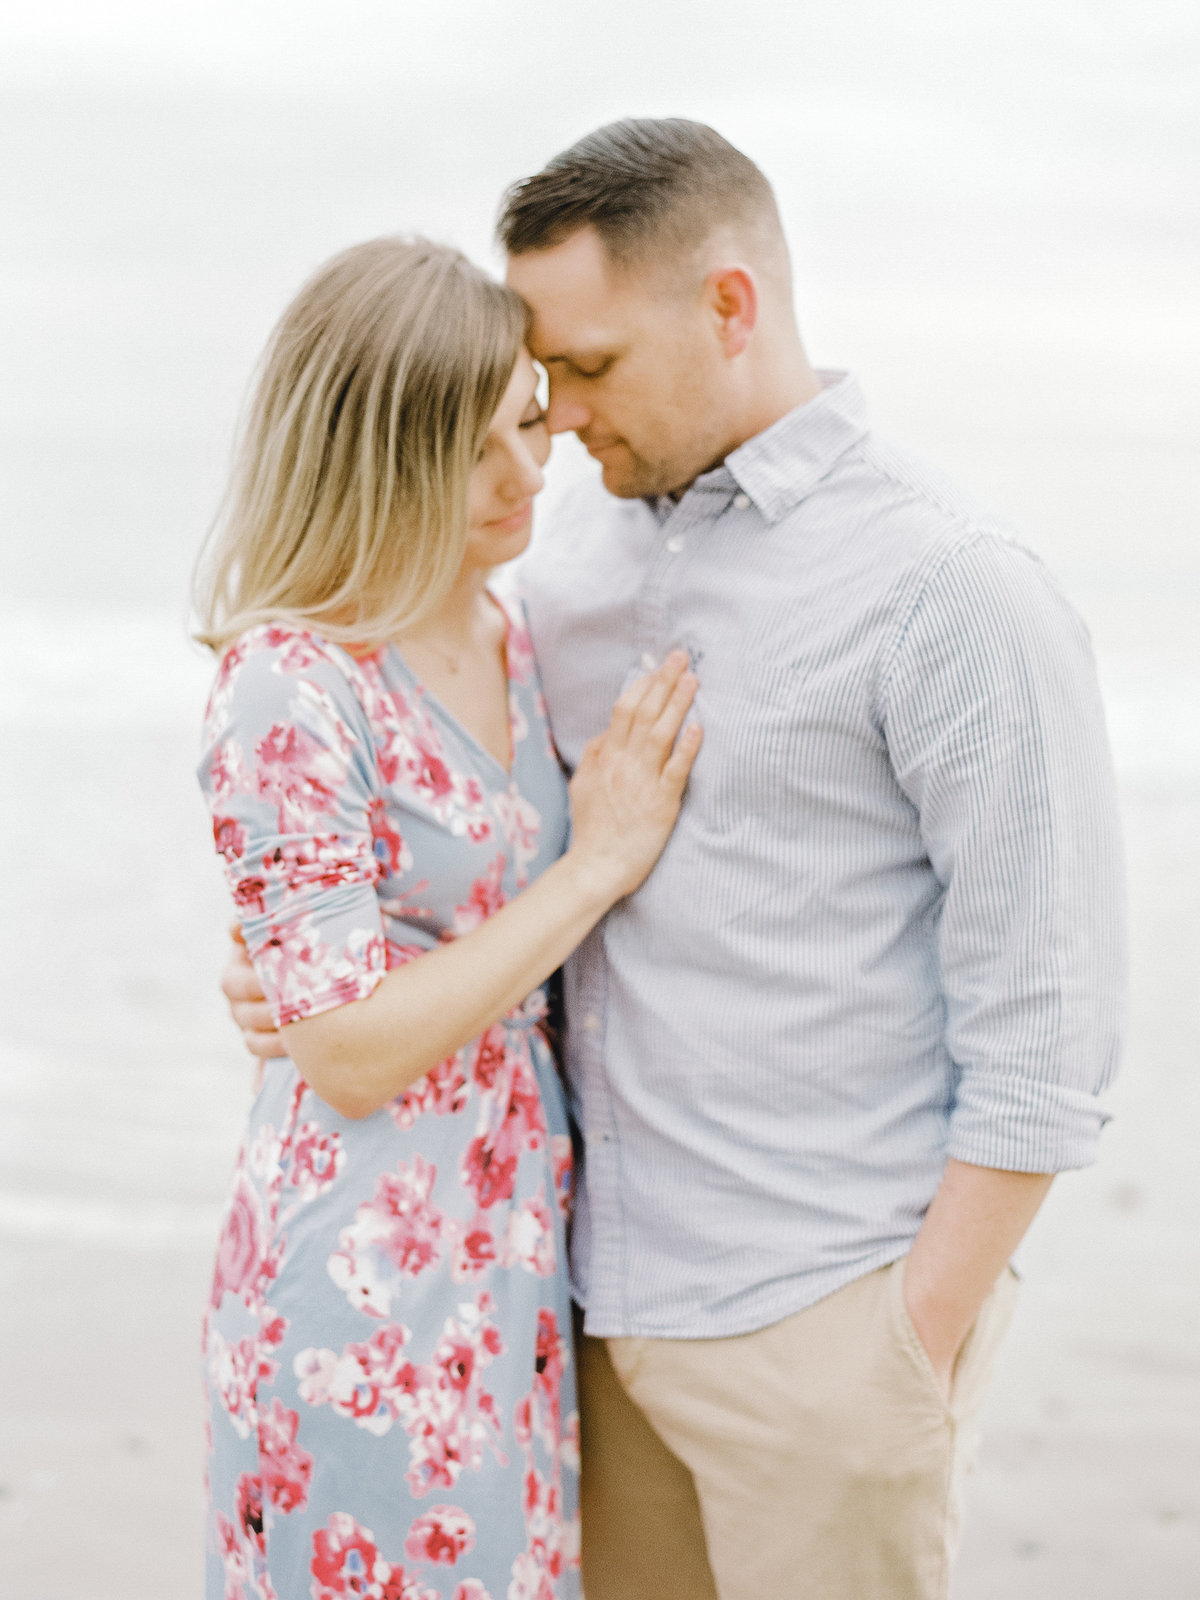 Babsie-Ly-Photography-fine-art-film-destination-engagement-photographer-malibu-el-matador-state-beach-2018-006